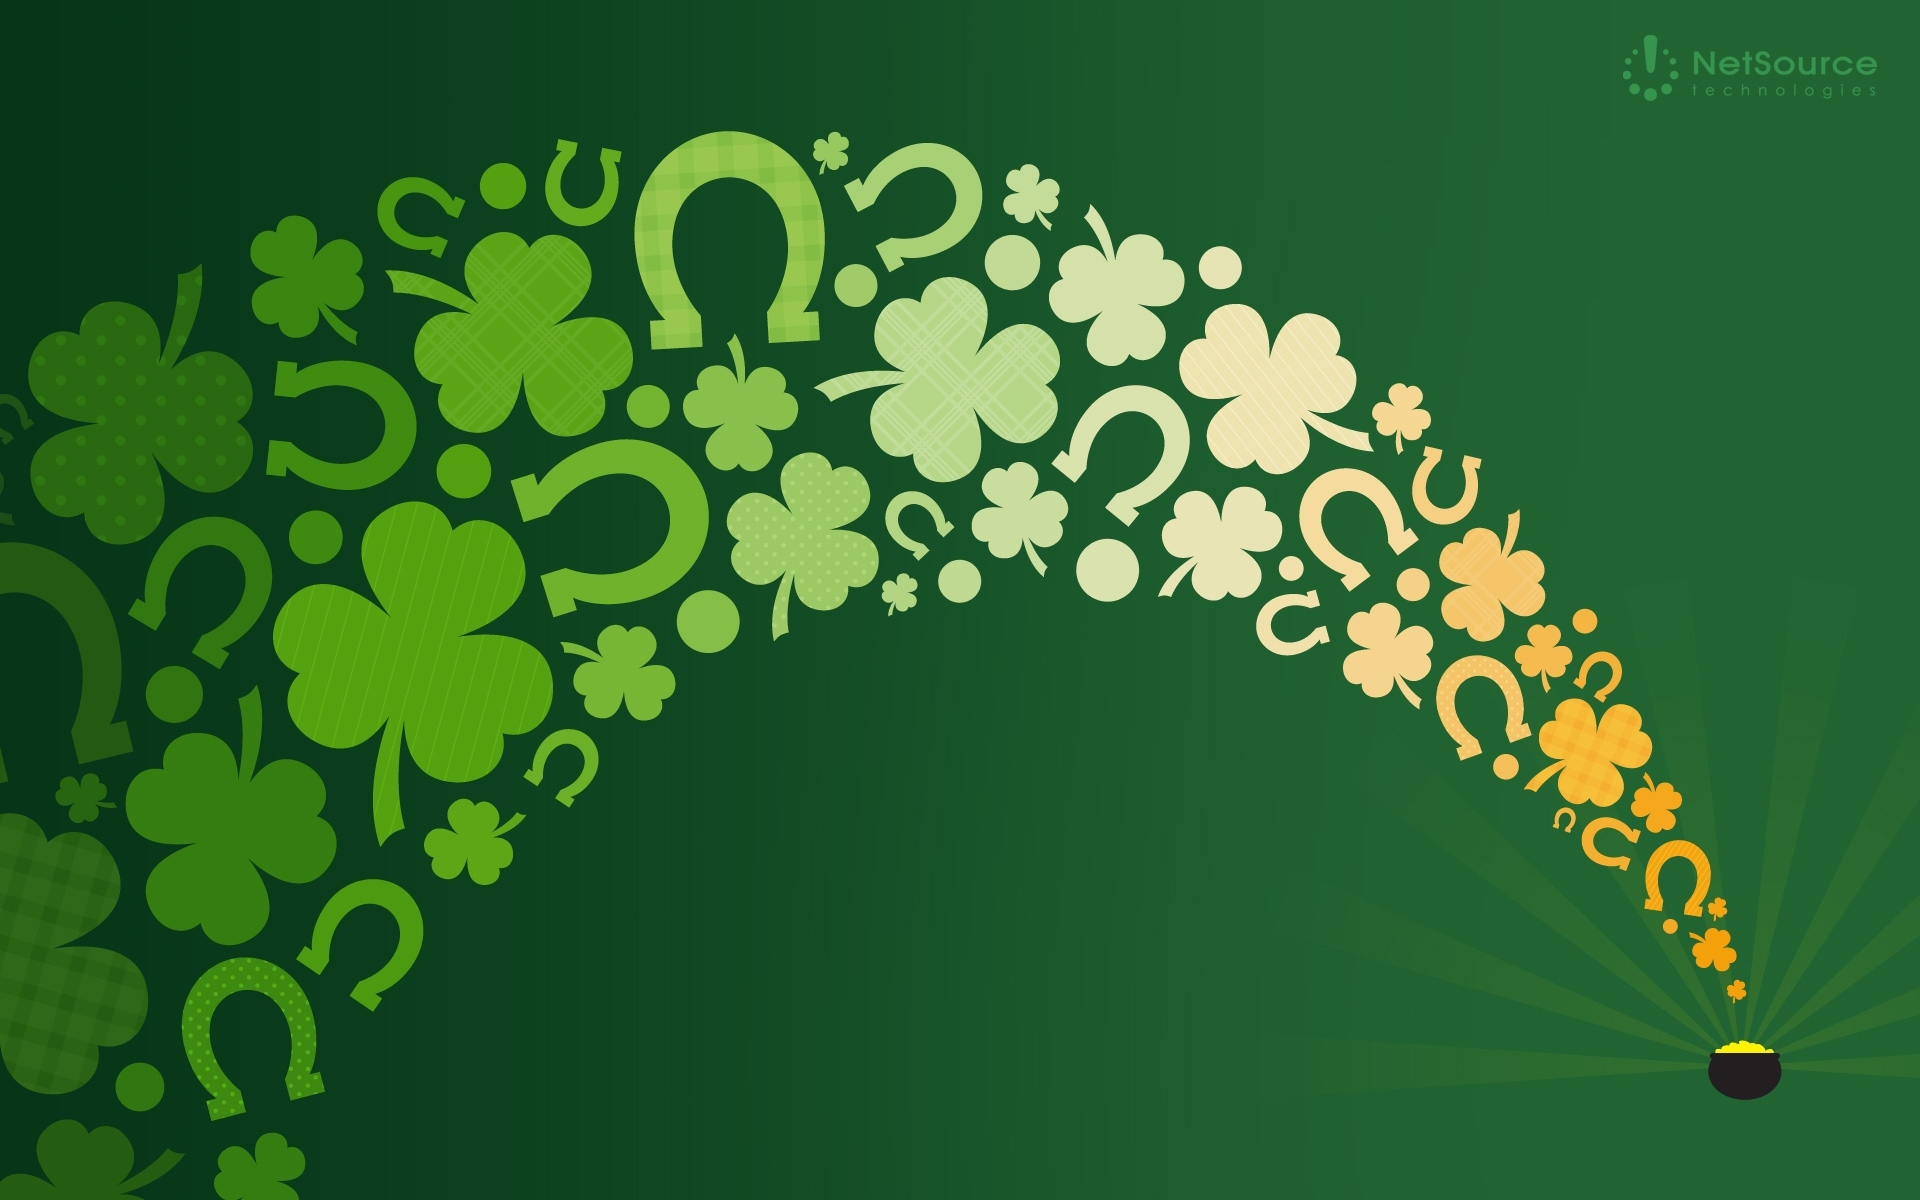 st patricks day images free download | valentine's day deals